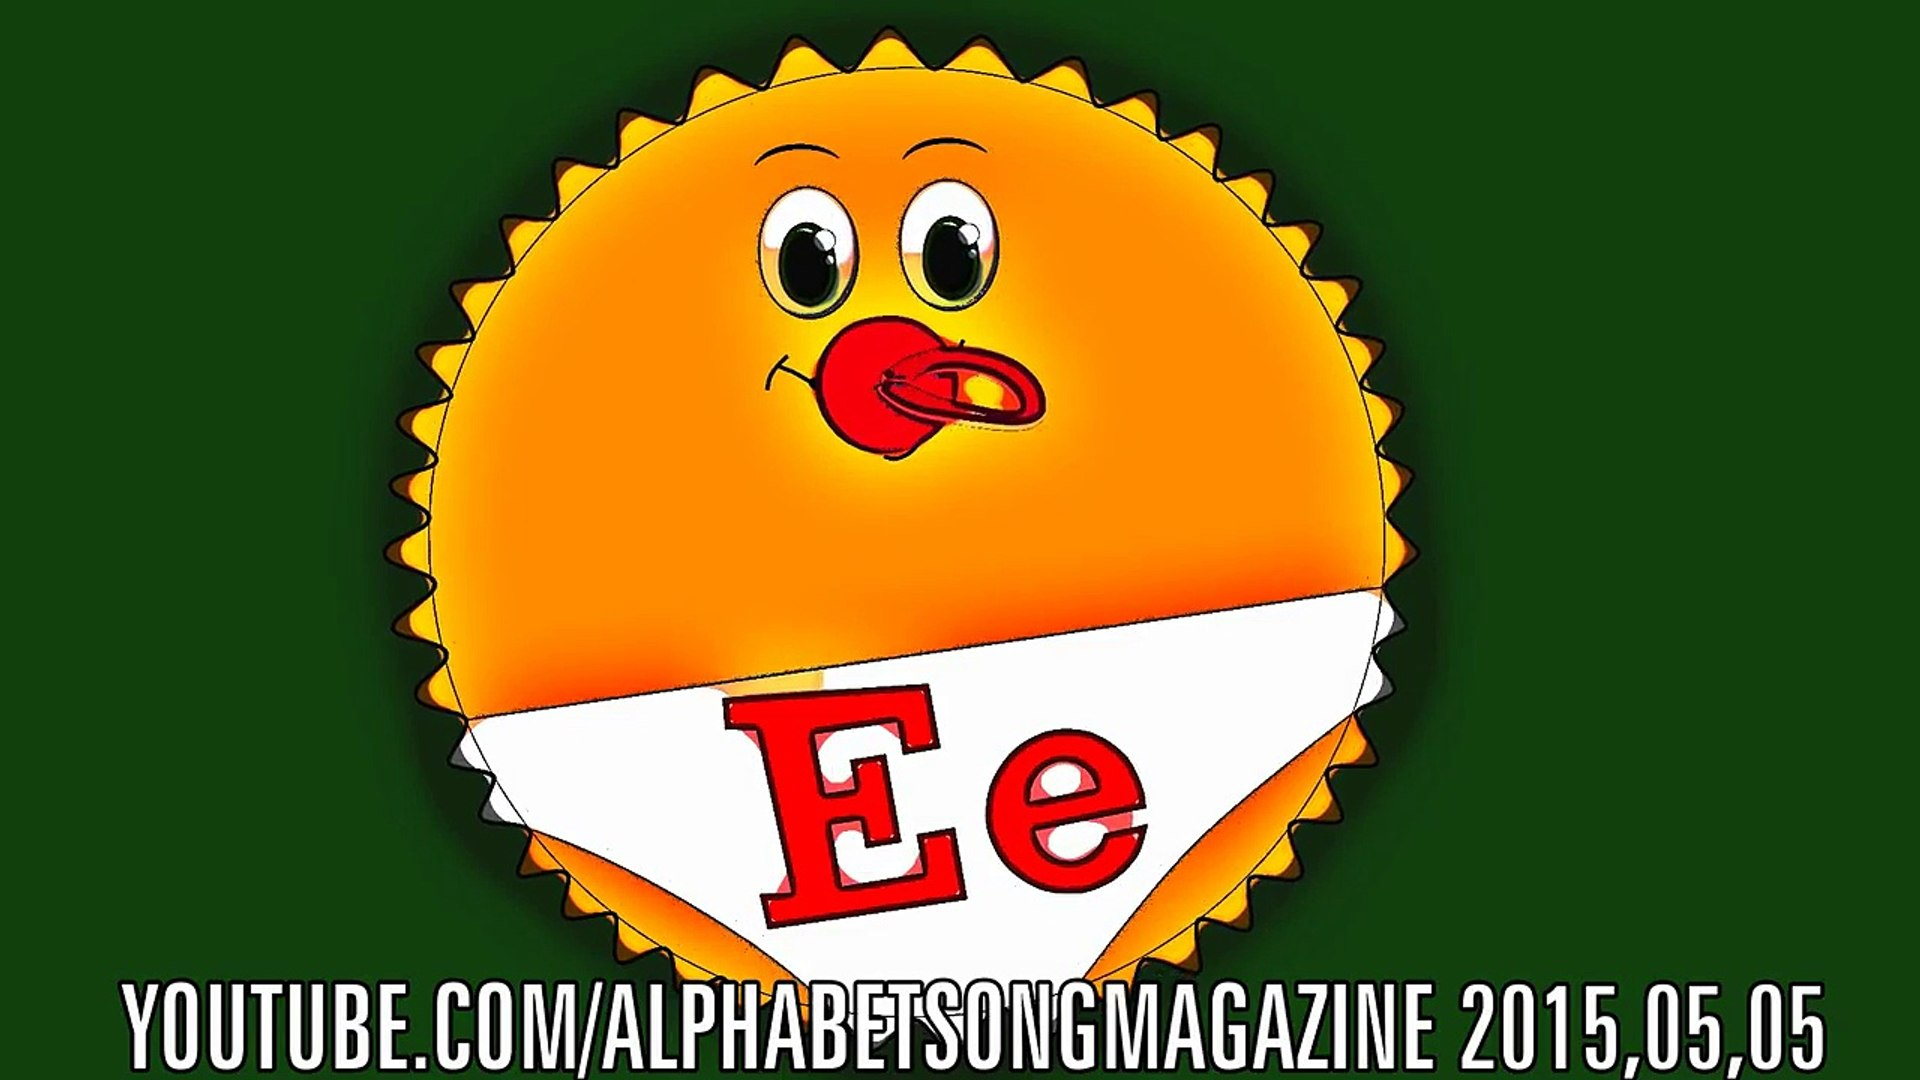 Alphabet Song with Big and Small Letter E to teach and learn ABCs